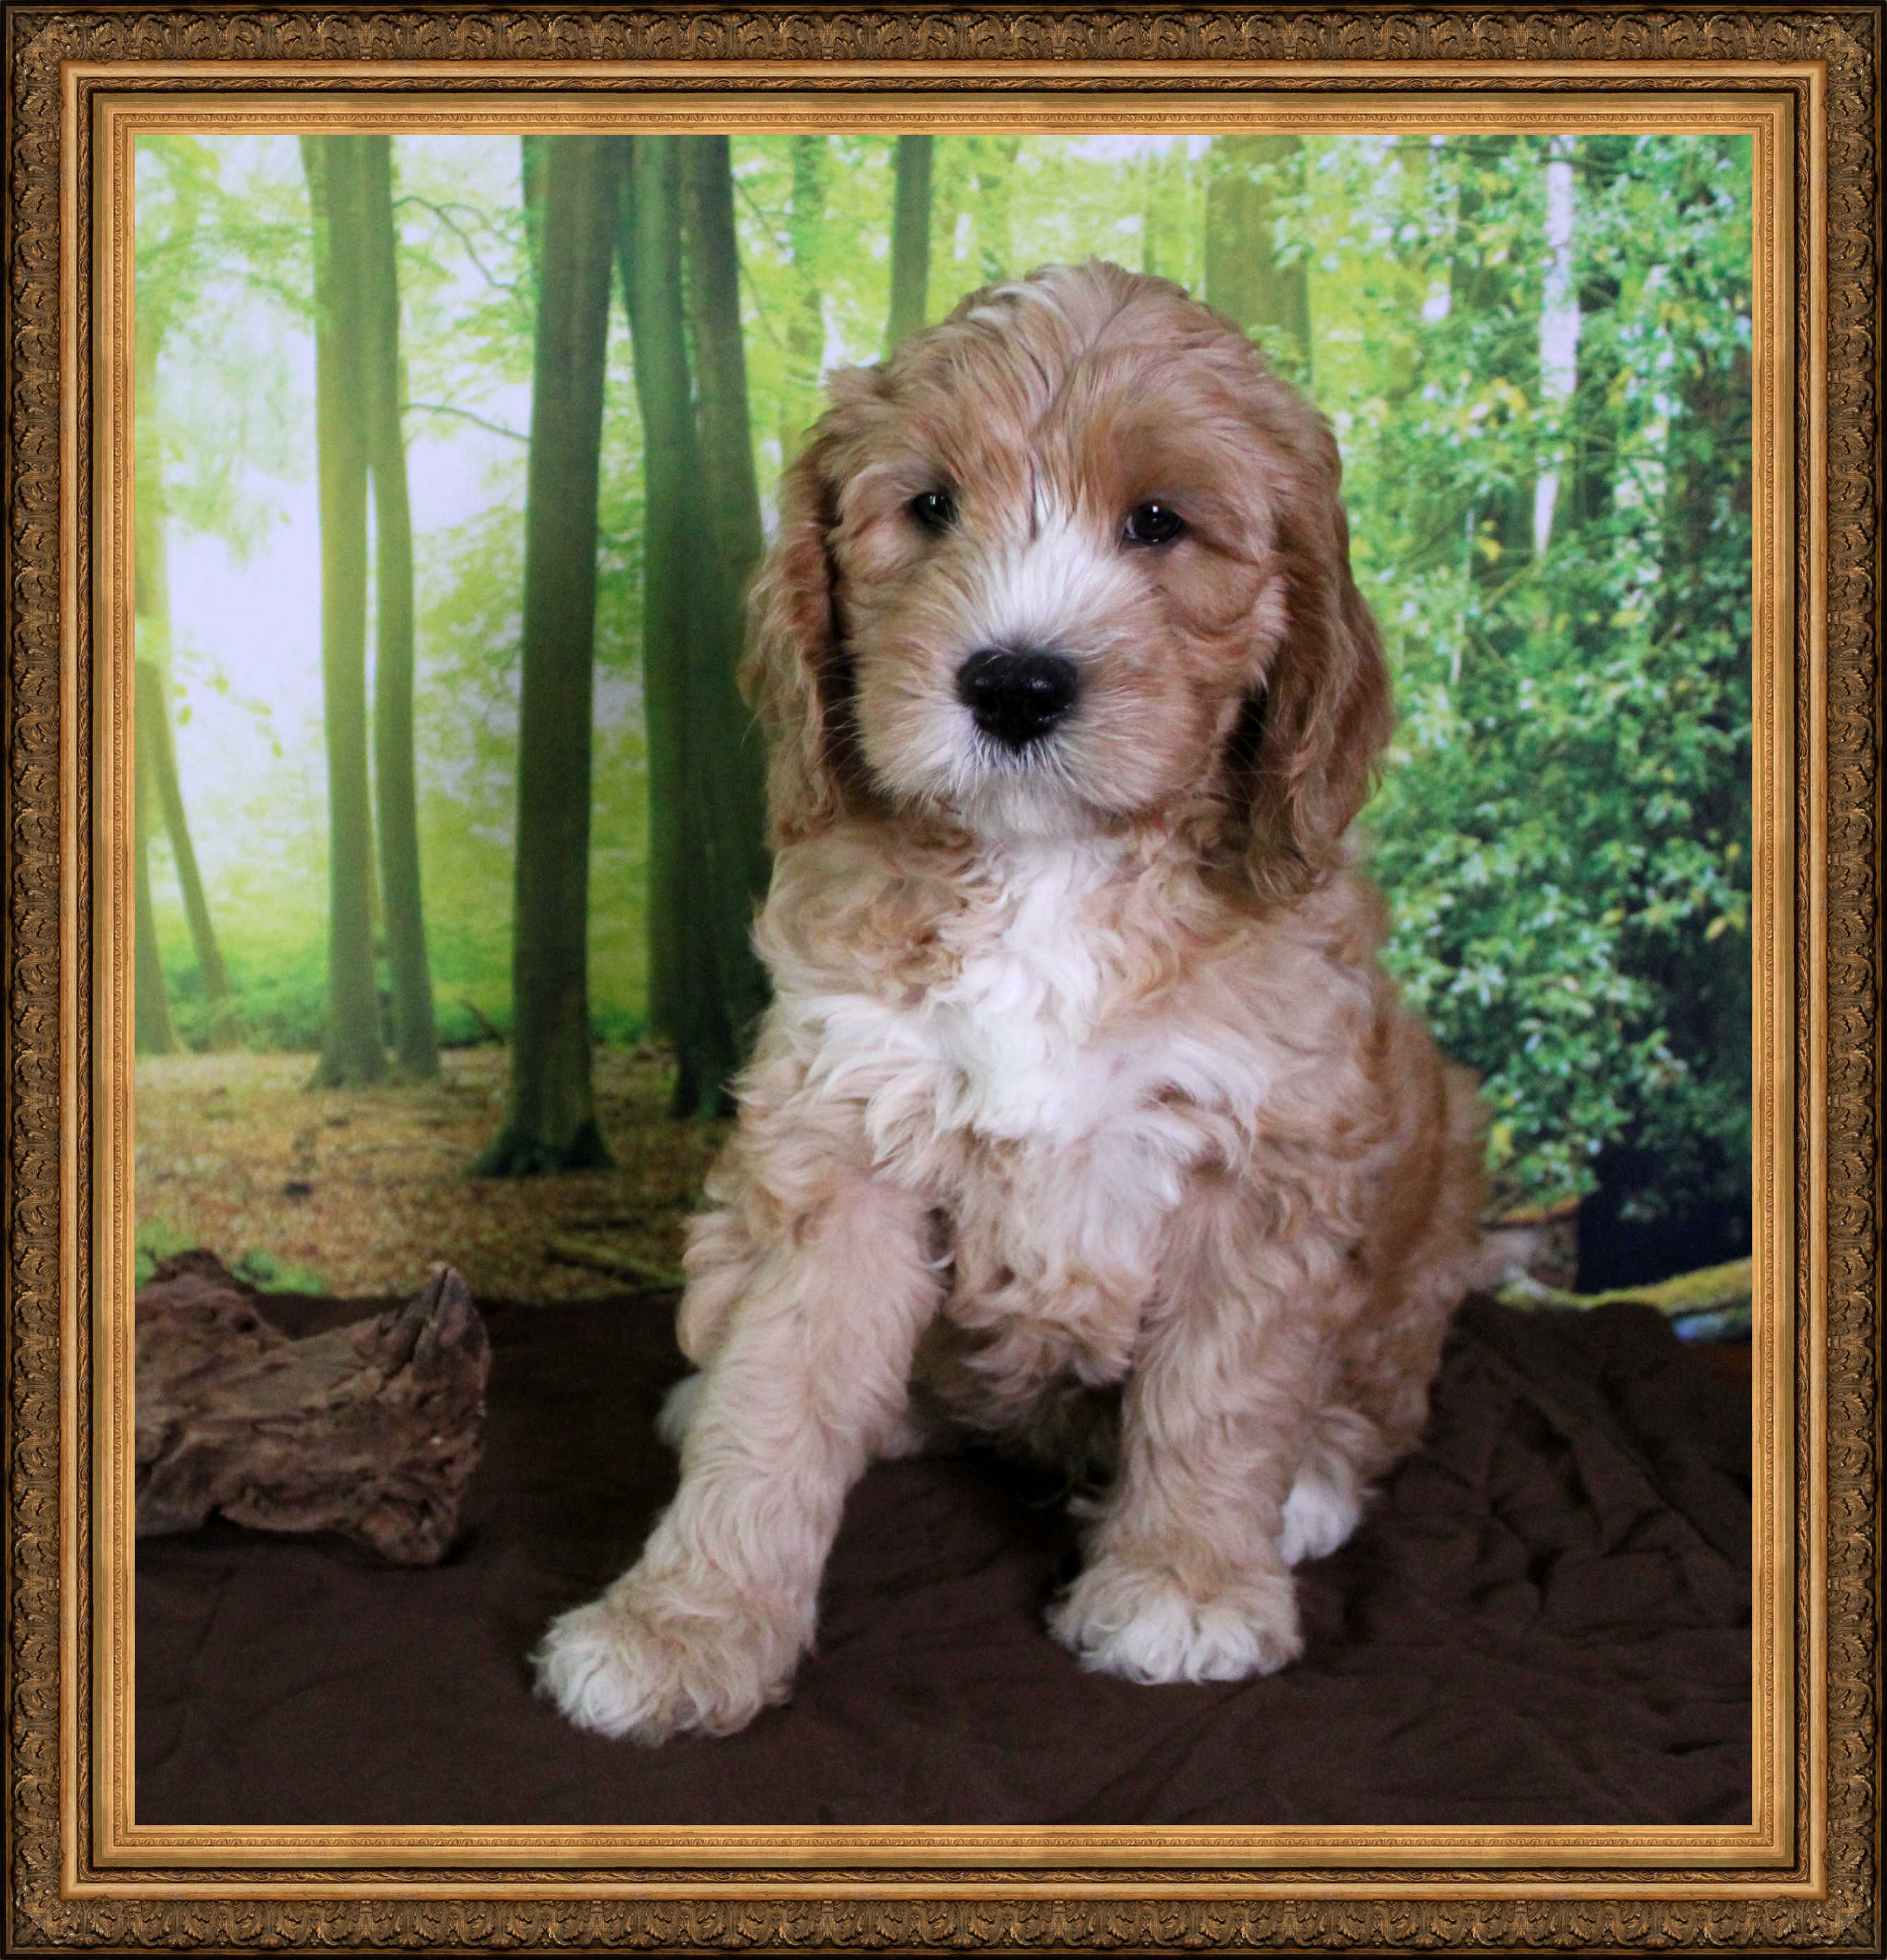 8 week old apricot Australian Labradoodle puppy